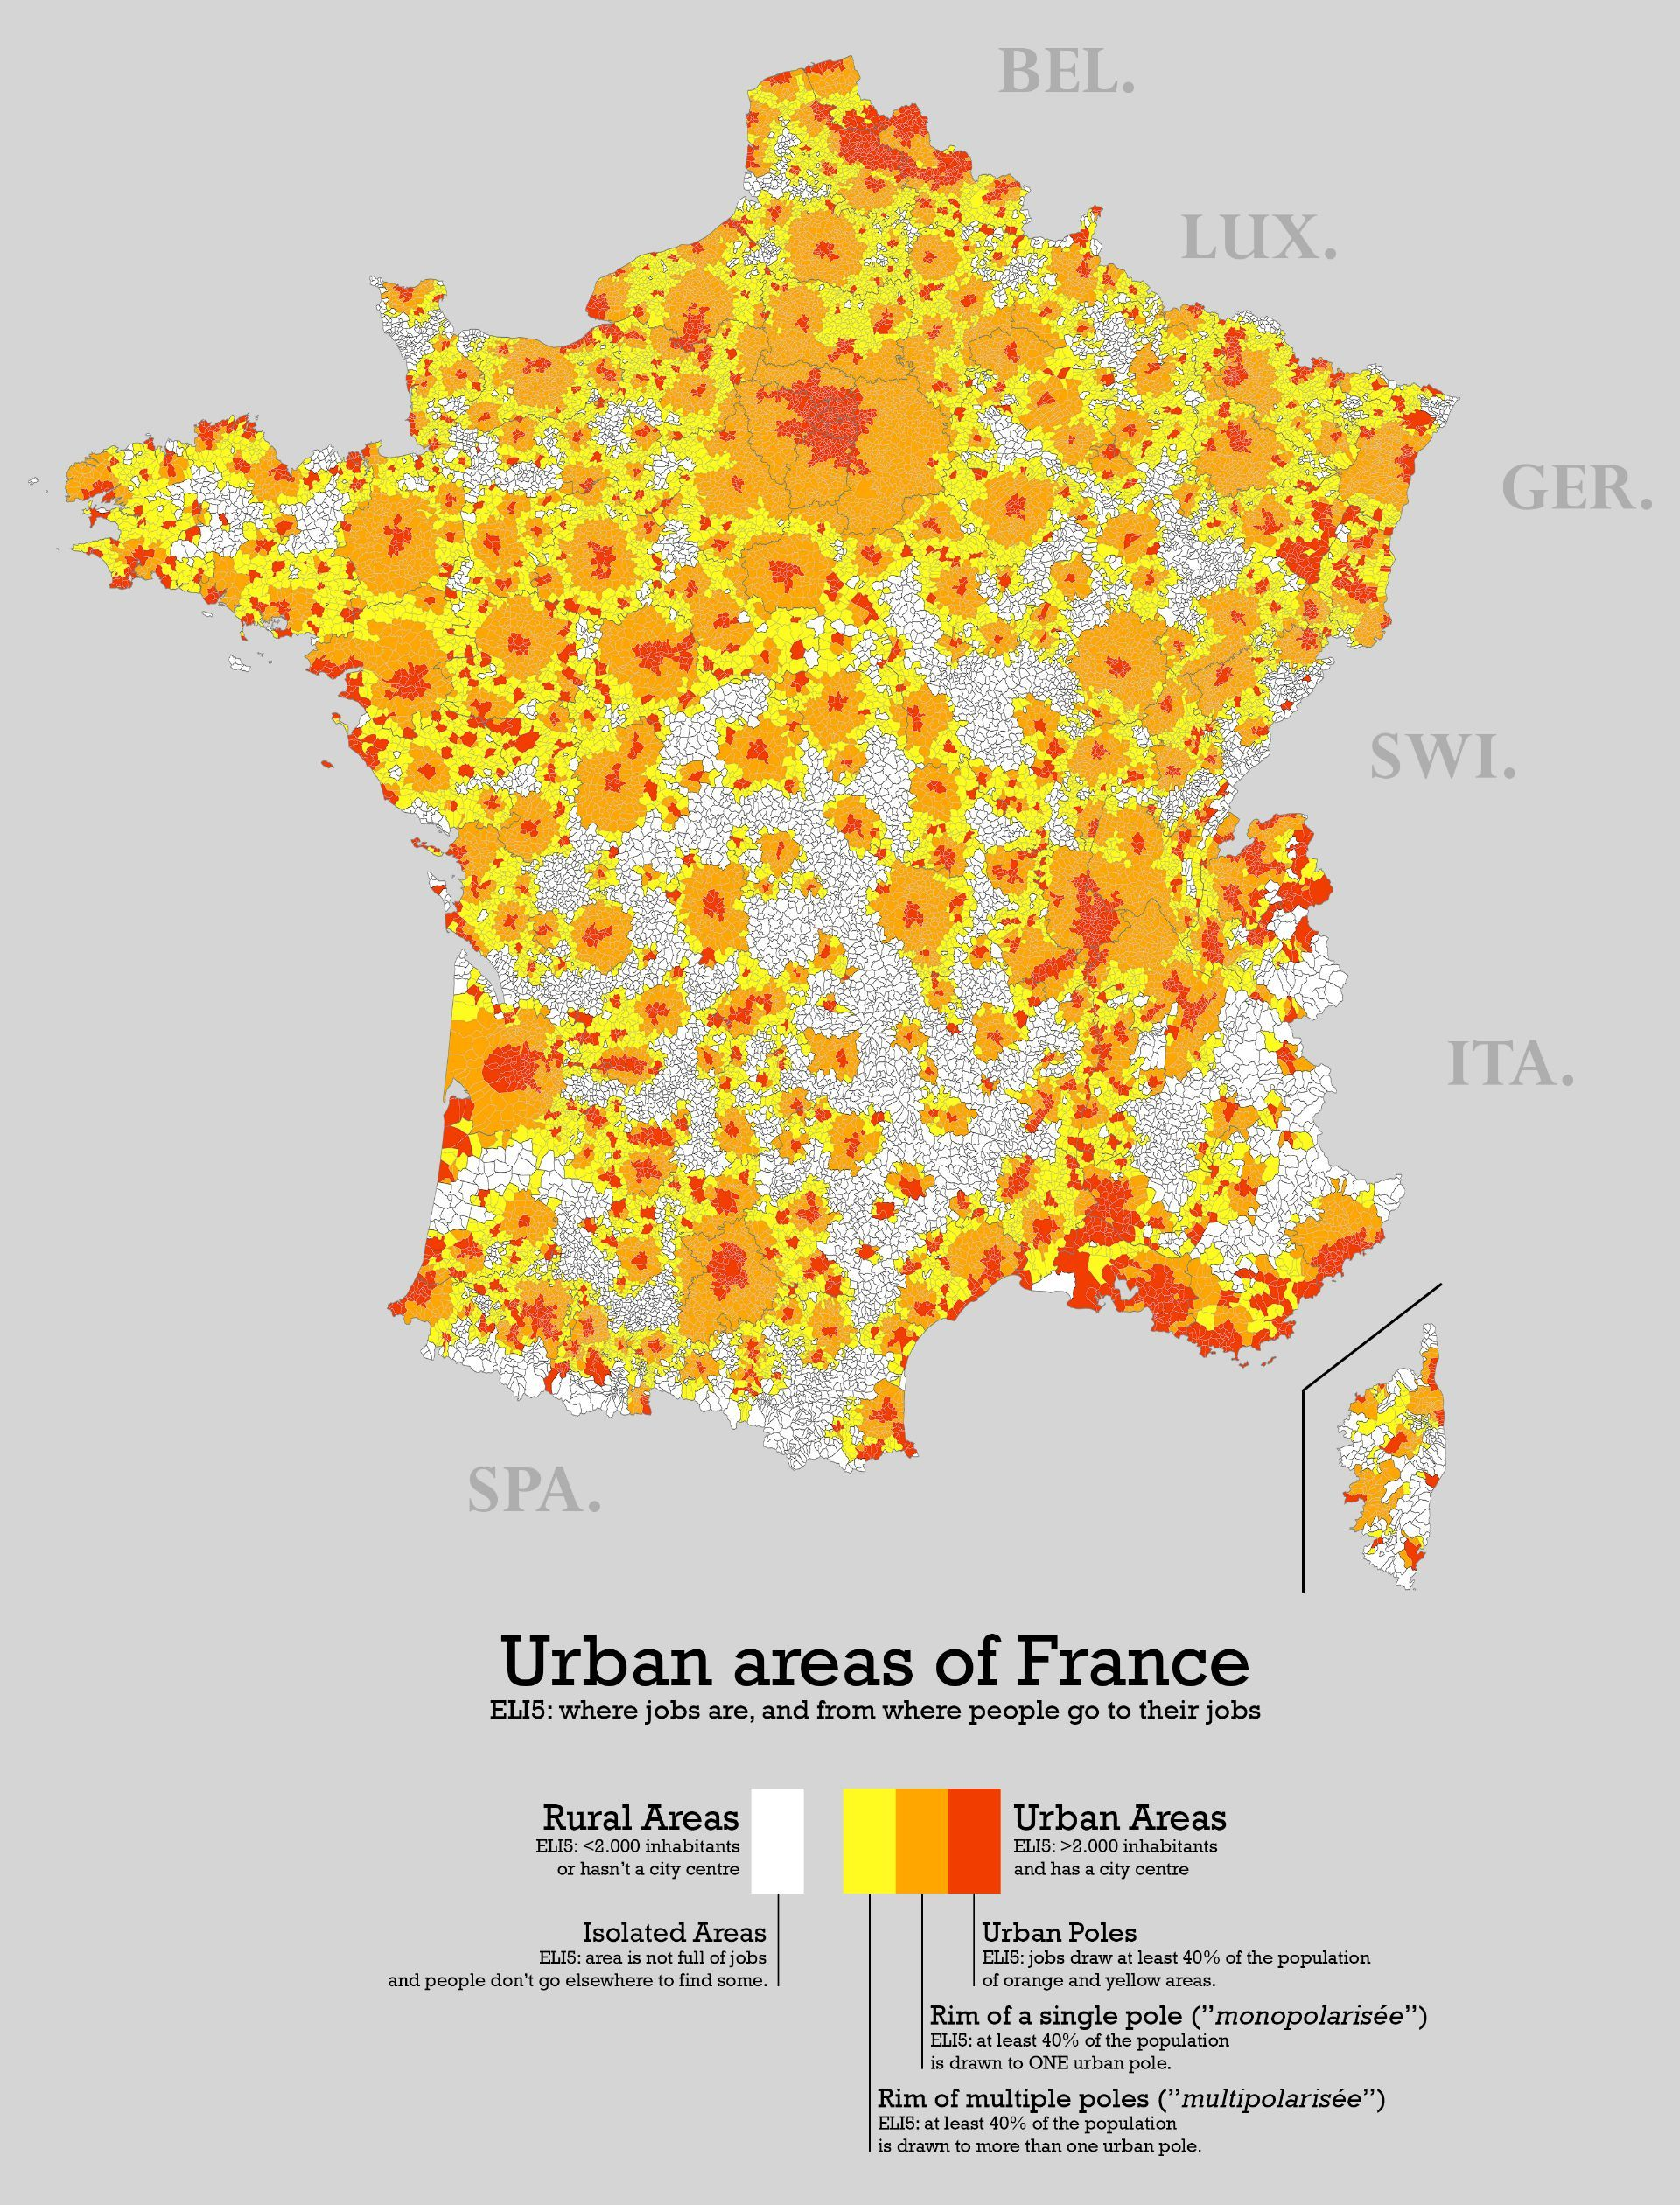 Areas Of France Map.Urban Areas Of France Where Jobs Are Abstract Facts Map